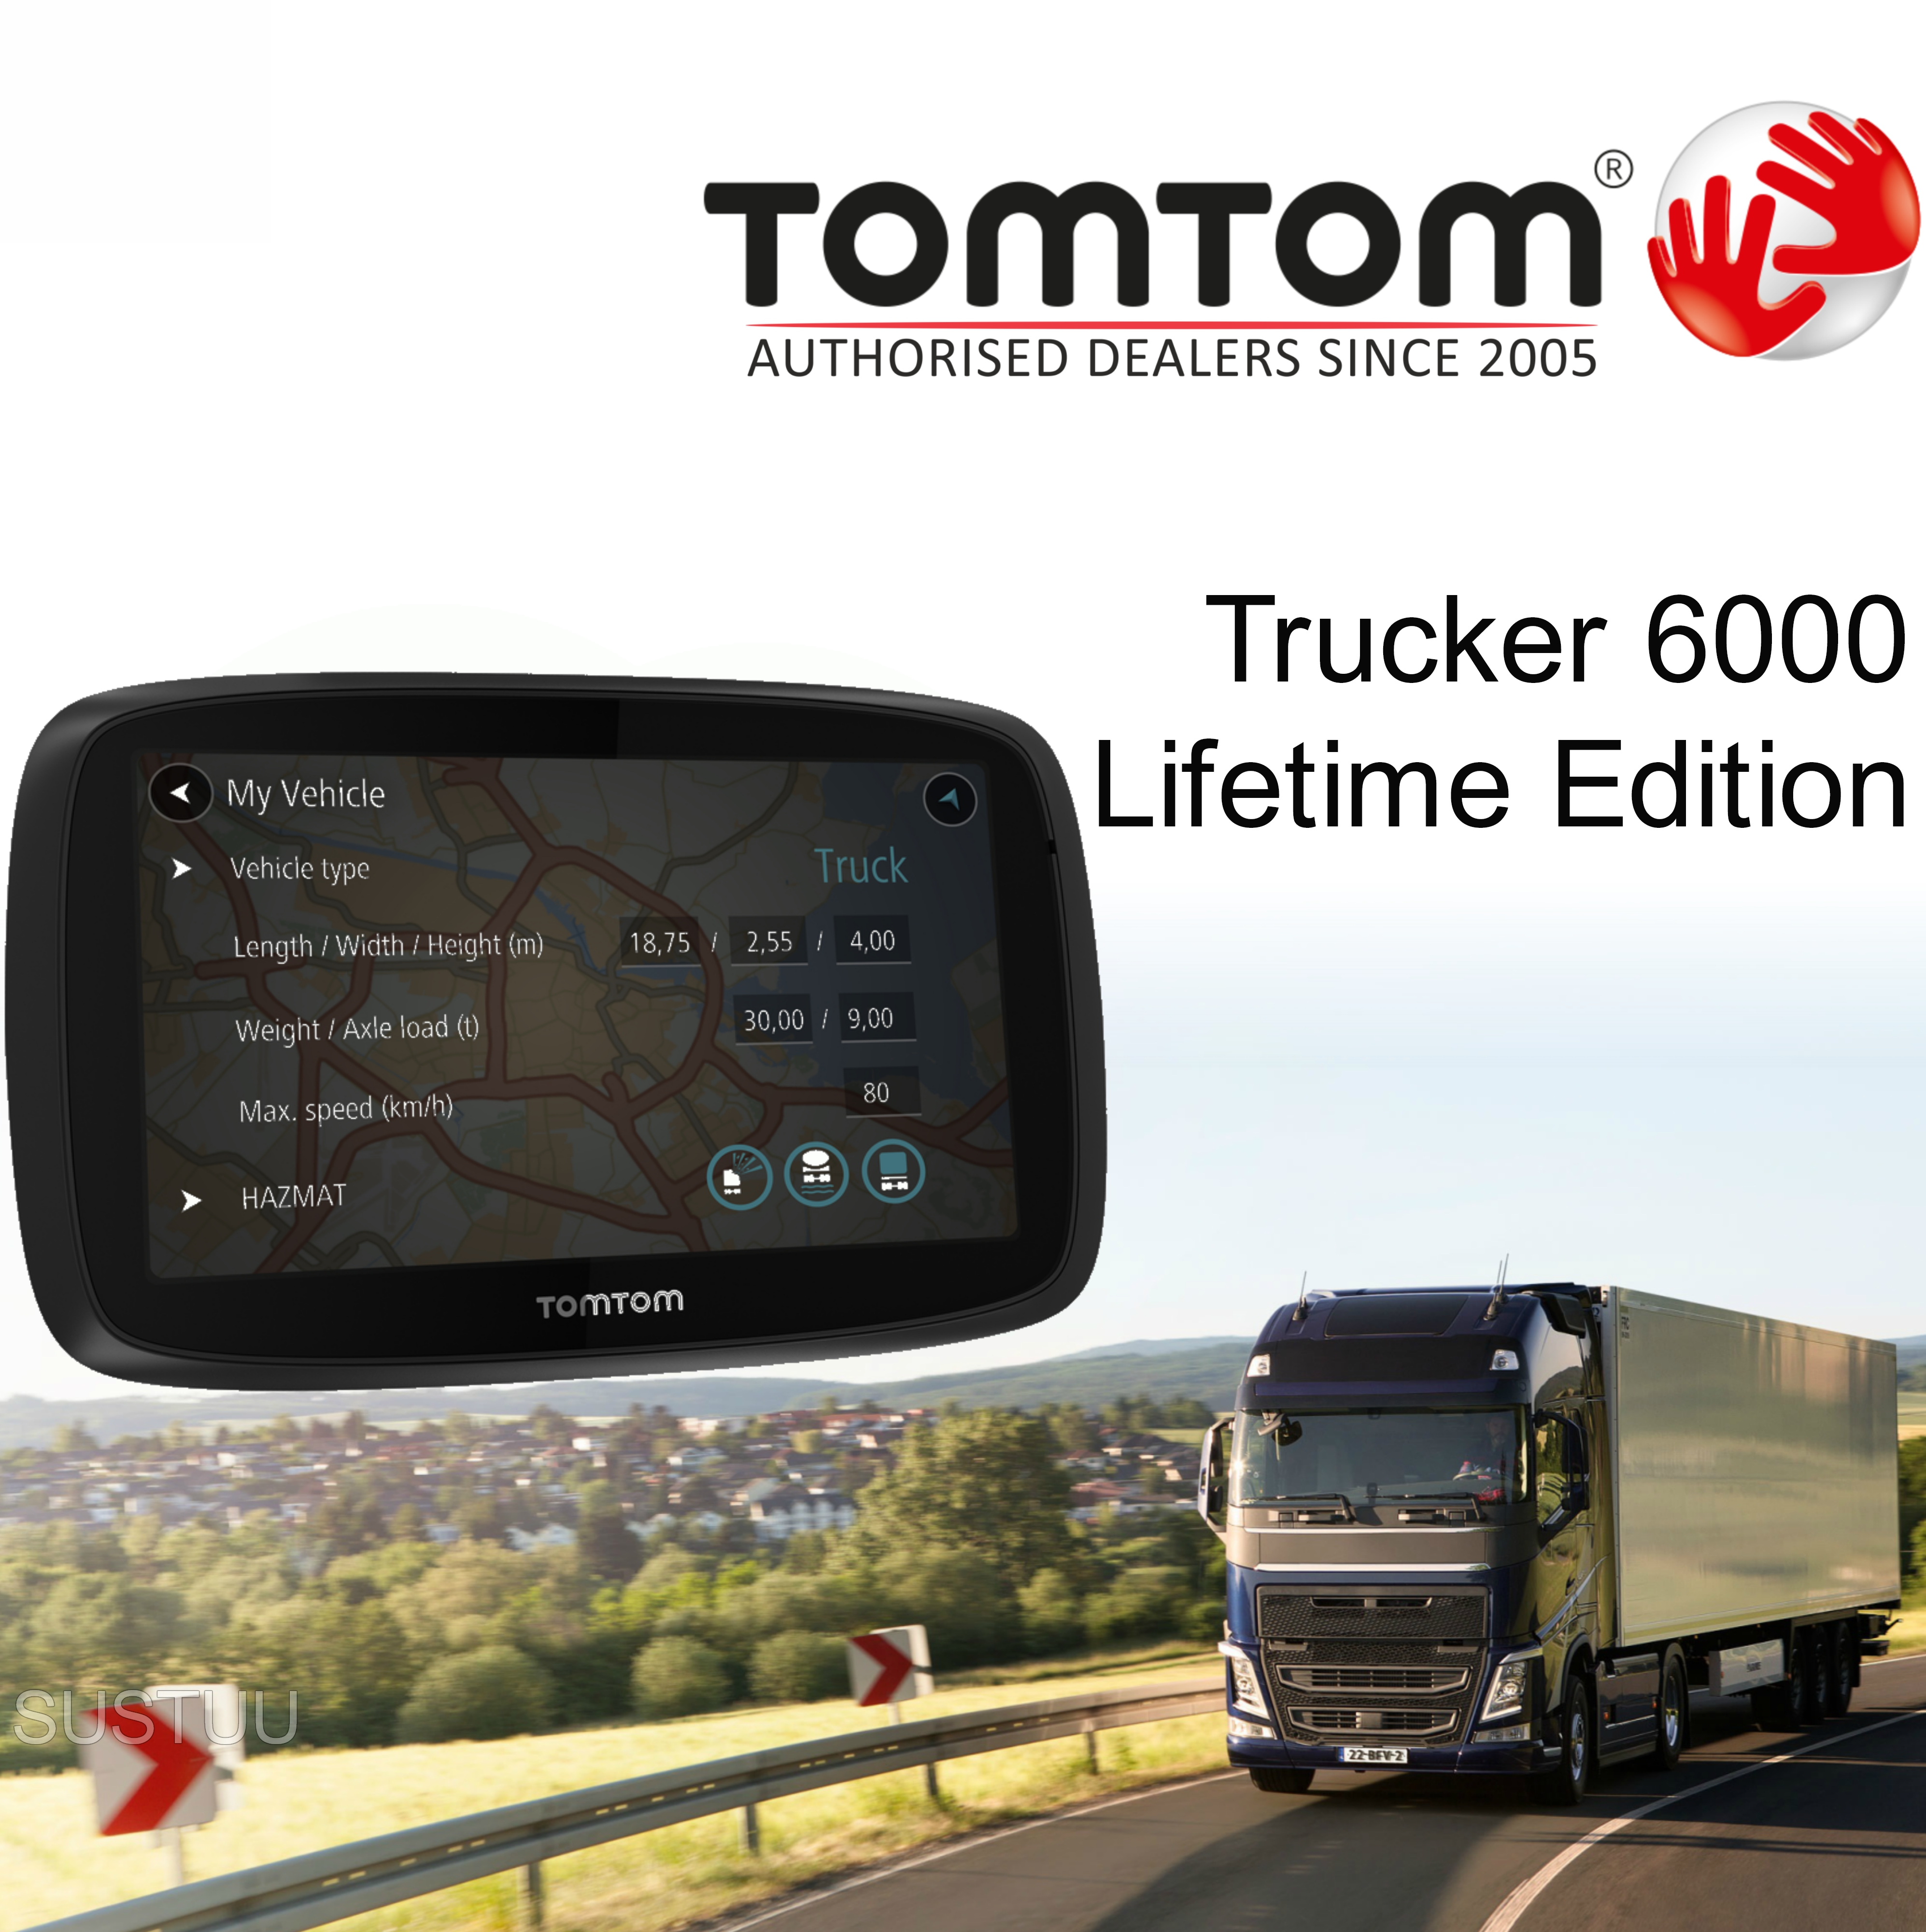 tomtom trucker 6000 lifetime edition gps satnav uk eu maps live traffic speedcameras. Black Bedroom Furniture Sets. Home Design Ideas